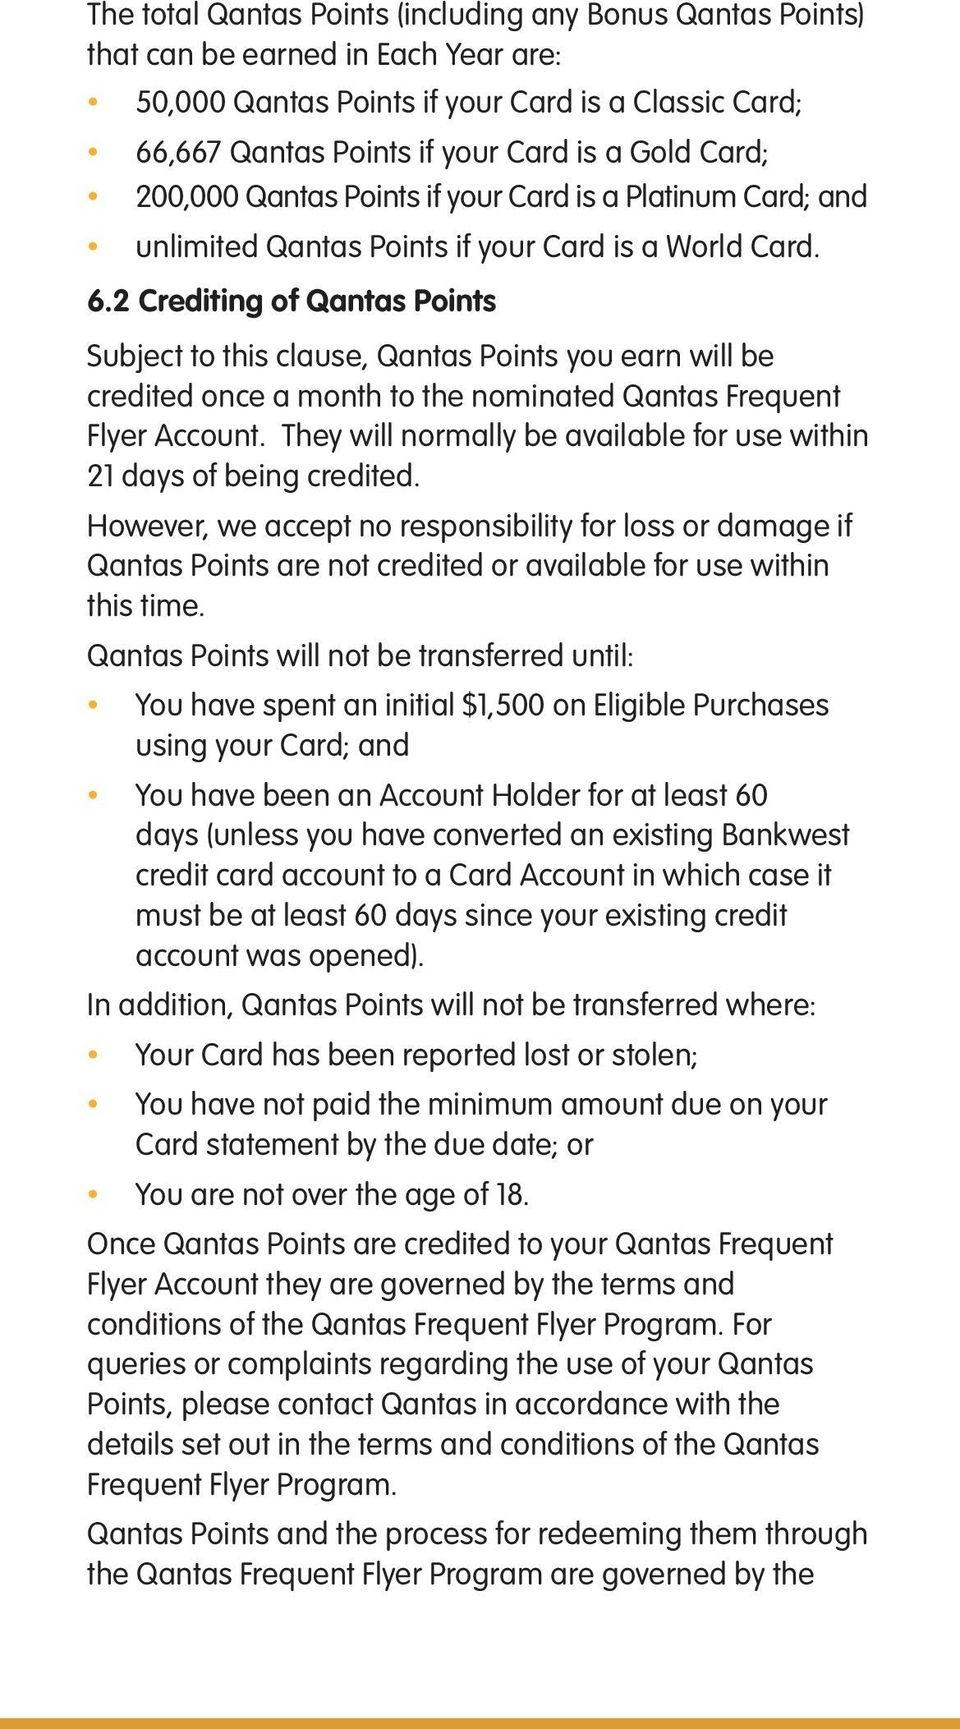 2 Crediting of Qantas Points Subject to this clause, Qantas Points you earn will be credited once a month to the nominated Qantas Frequent Flyer Account.